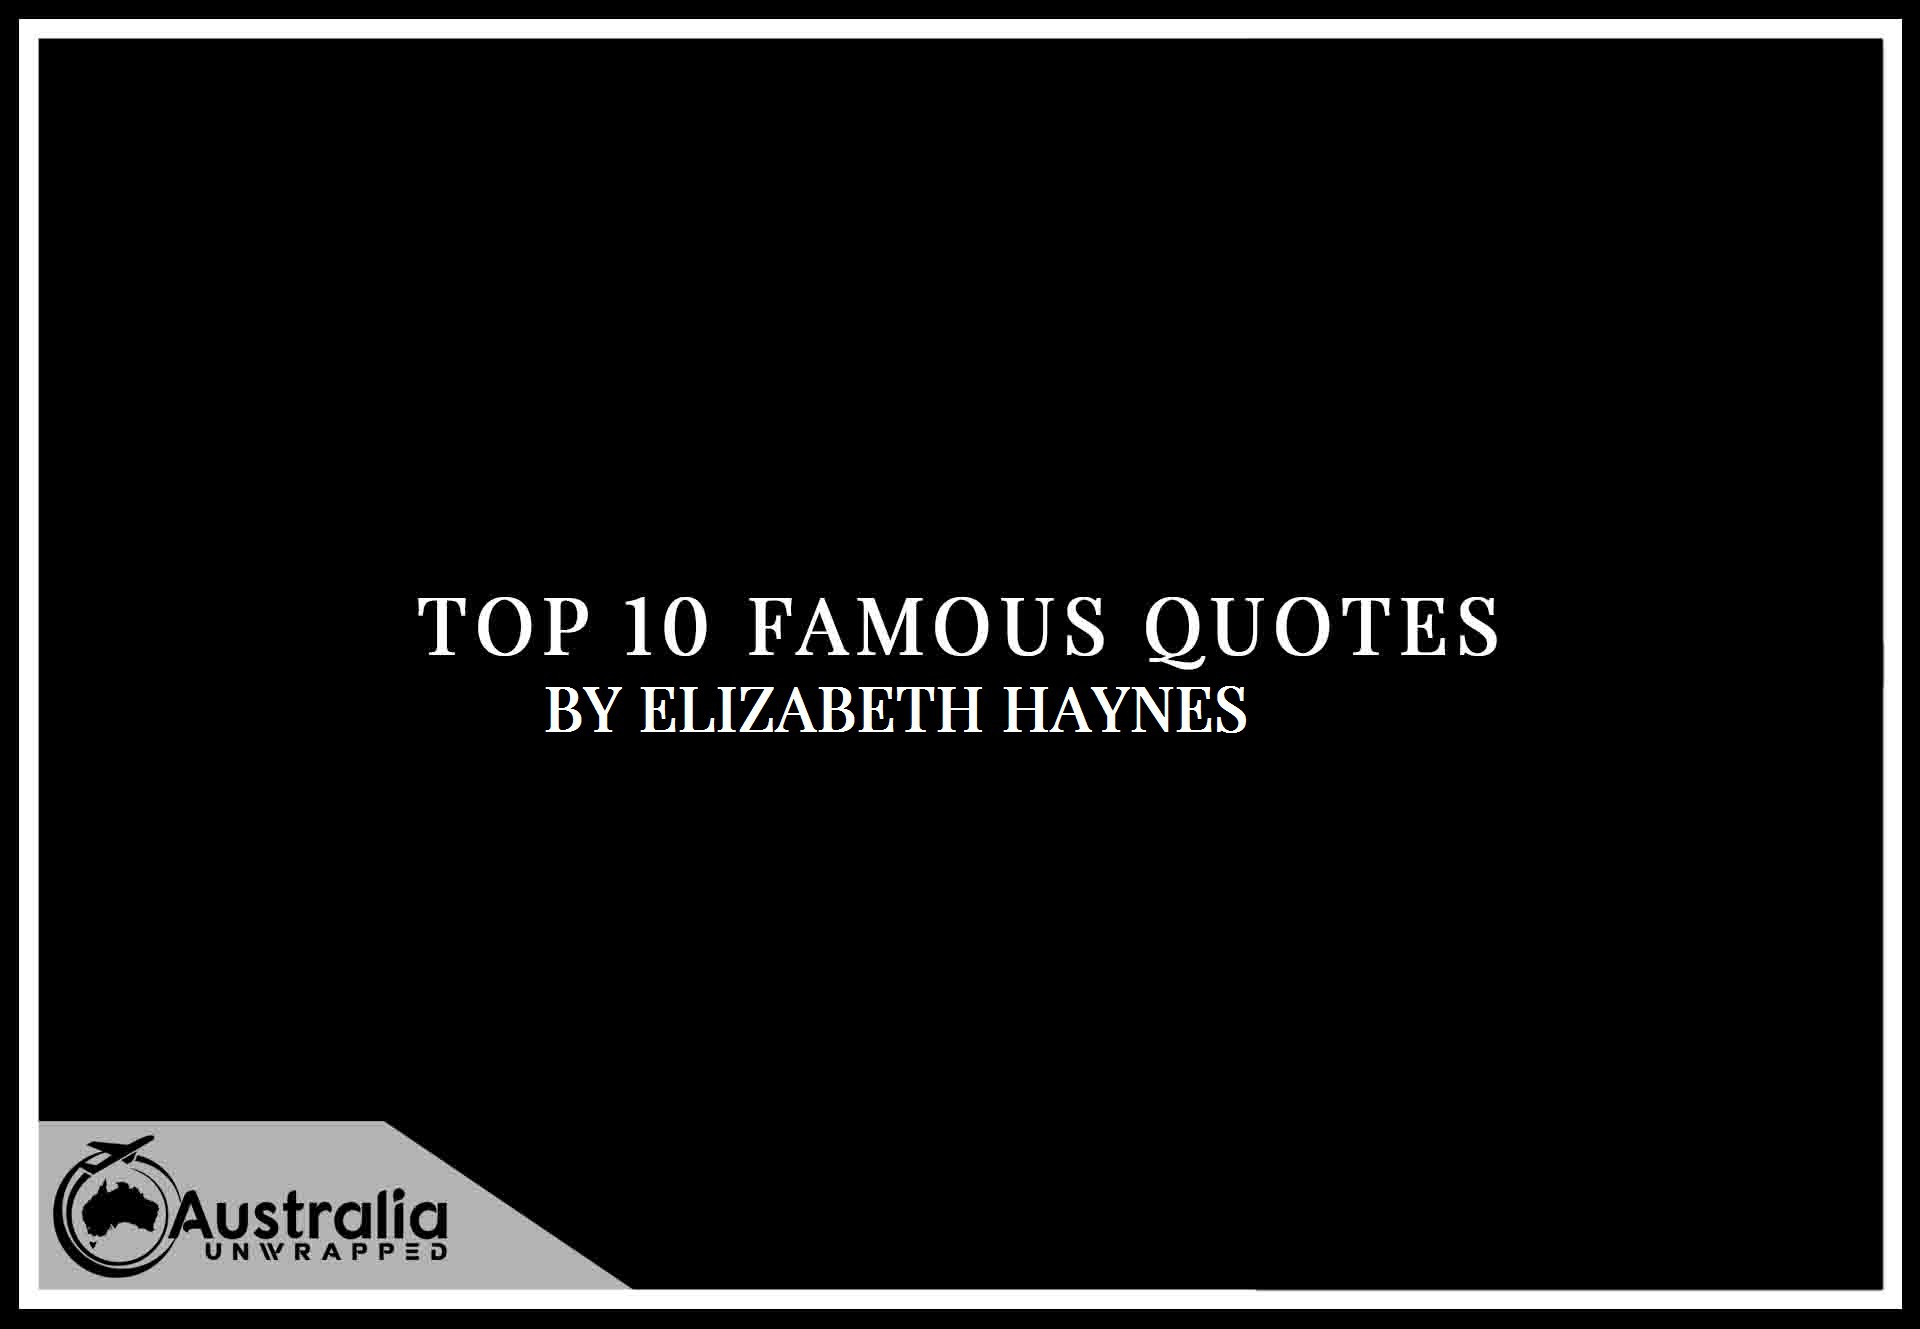 Elizabeth Haynes's Top 10 Popular and Famous Quotes